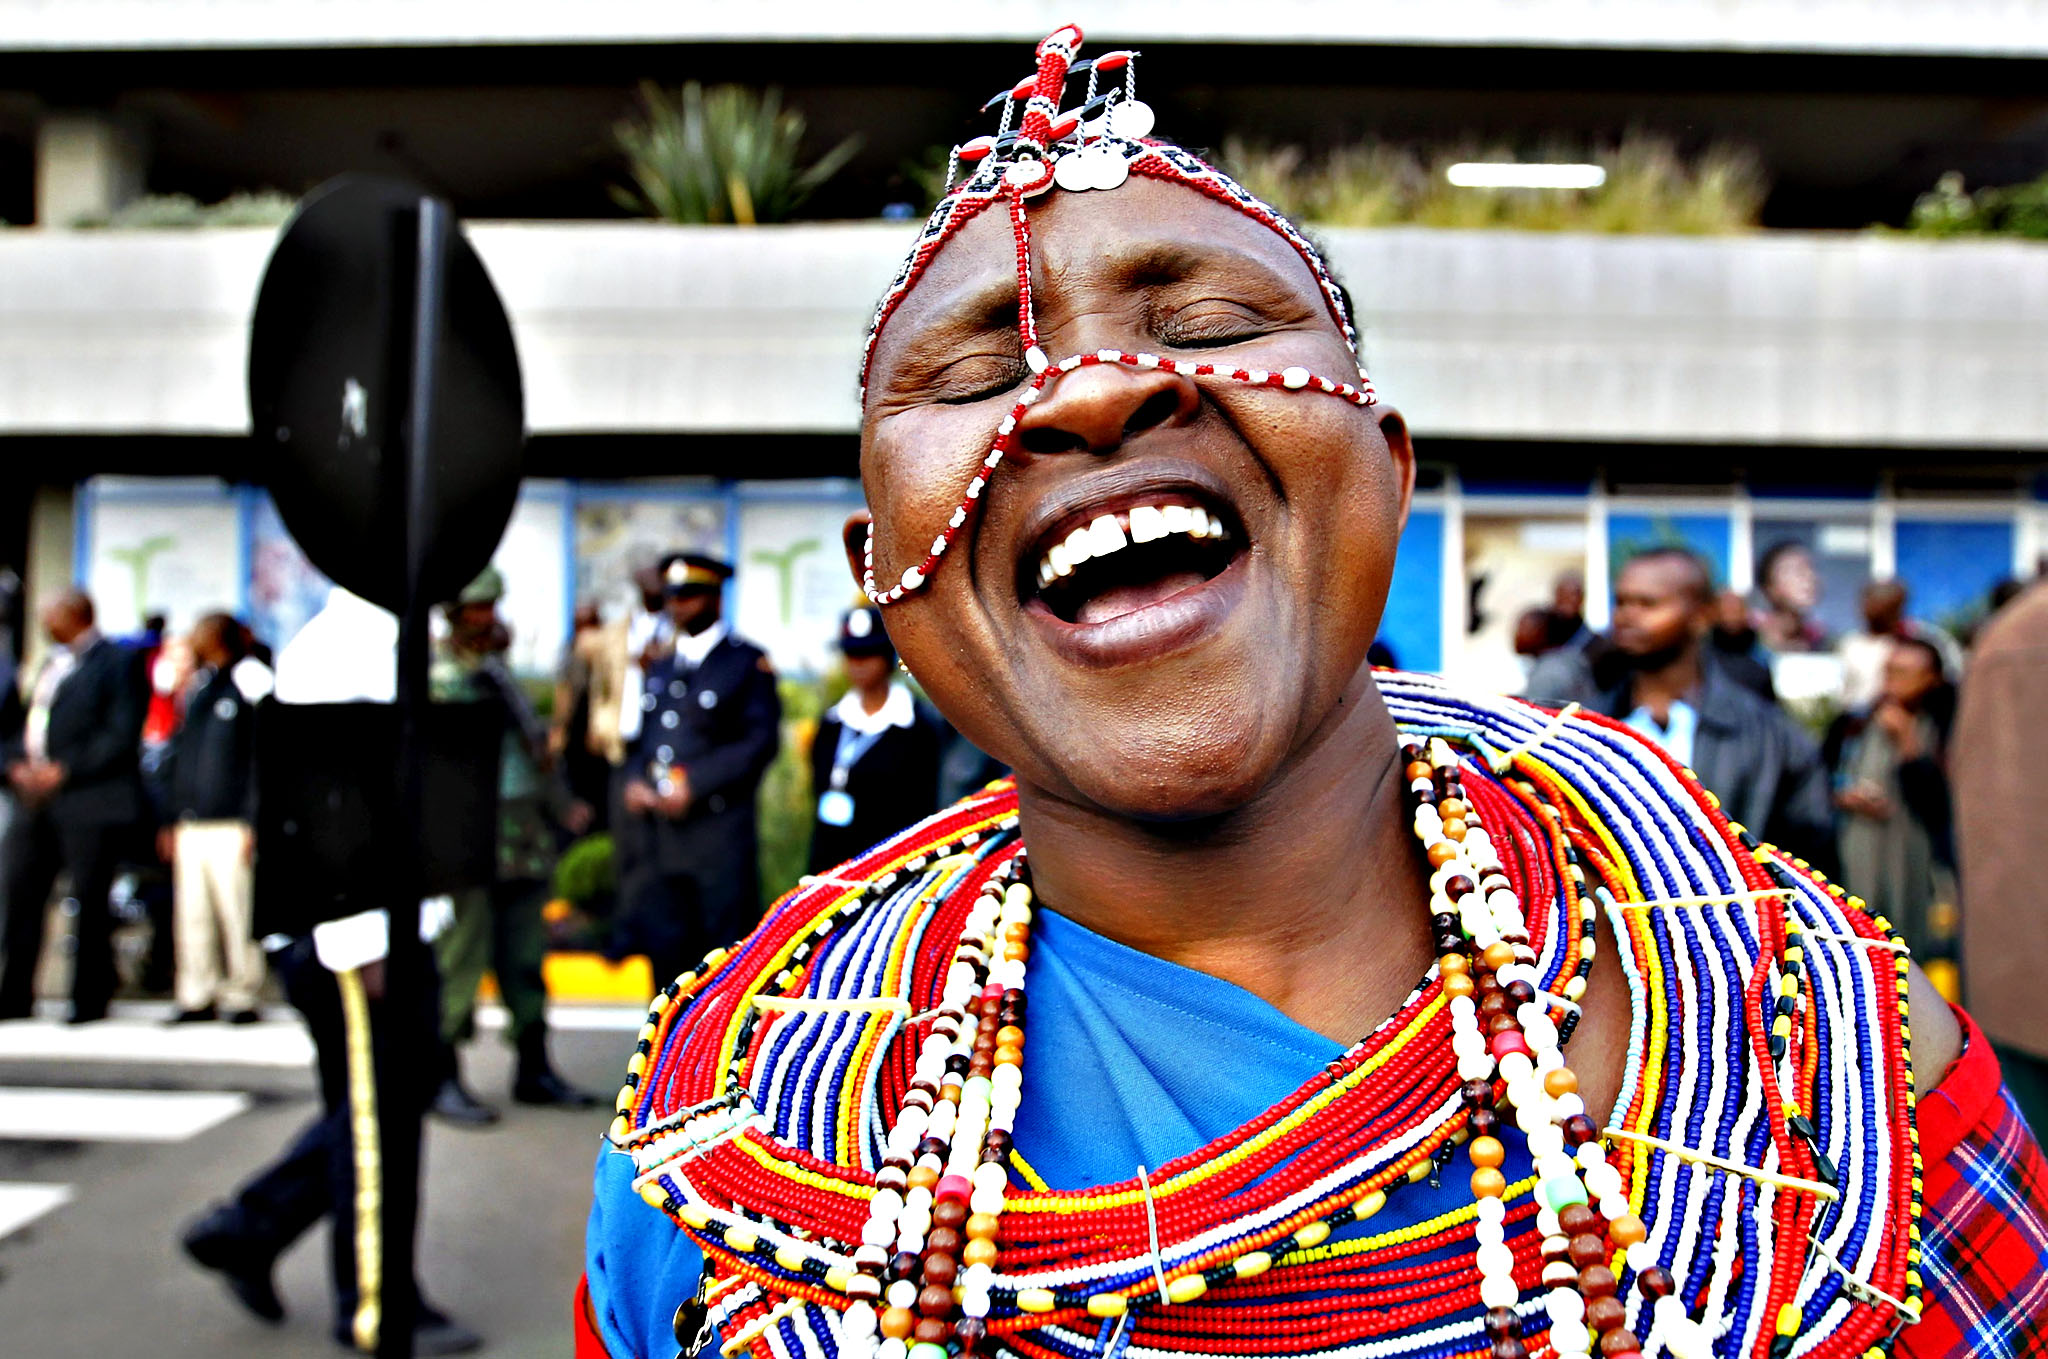 A Maasai woman in traditional clothing celebrates as she welcomes the national athletics team at the Jomo Kenyatta airport in Nairobi on Monday, after they topped the medals table at the recently concluded 15th International Association of Athletics Federations (IAAF) World Championships at the National Stadium in Beijing, China